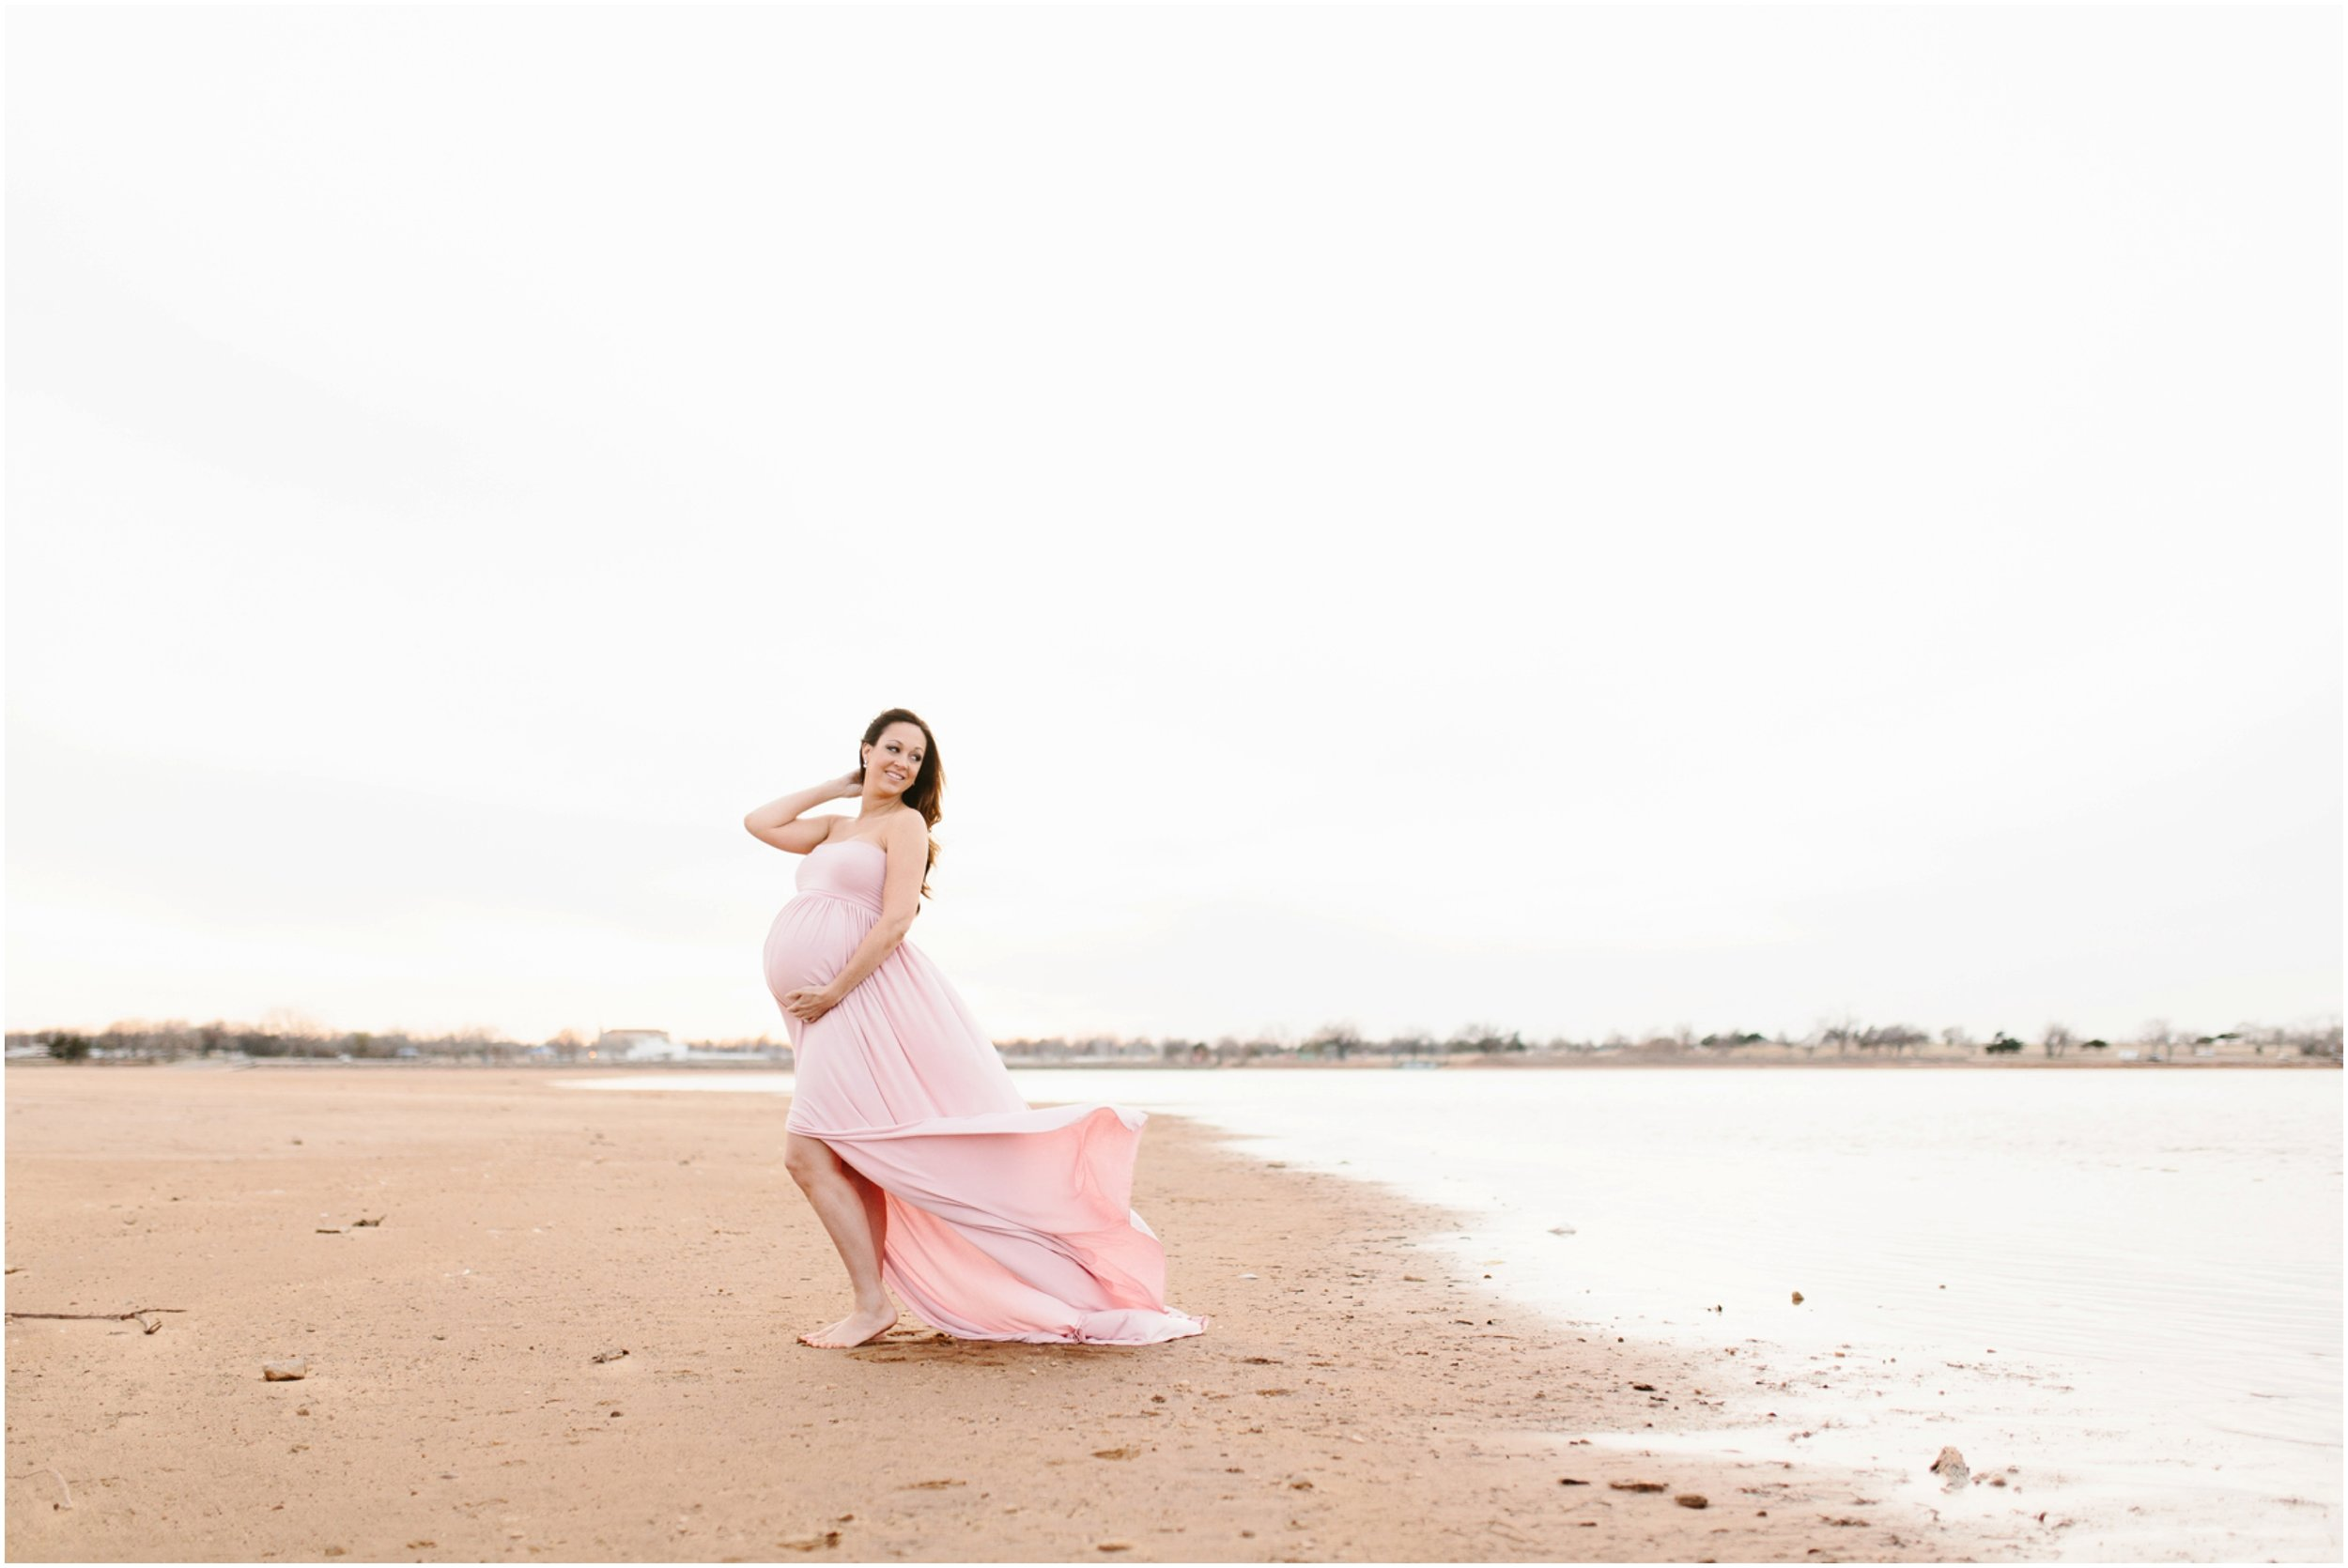 new mother-to-be maternity photos at lake in long dress